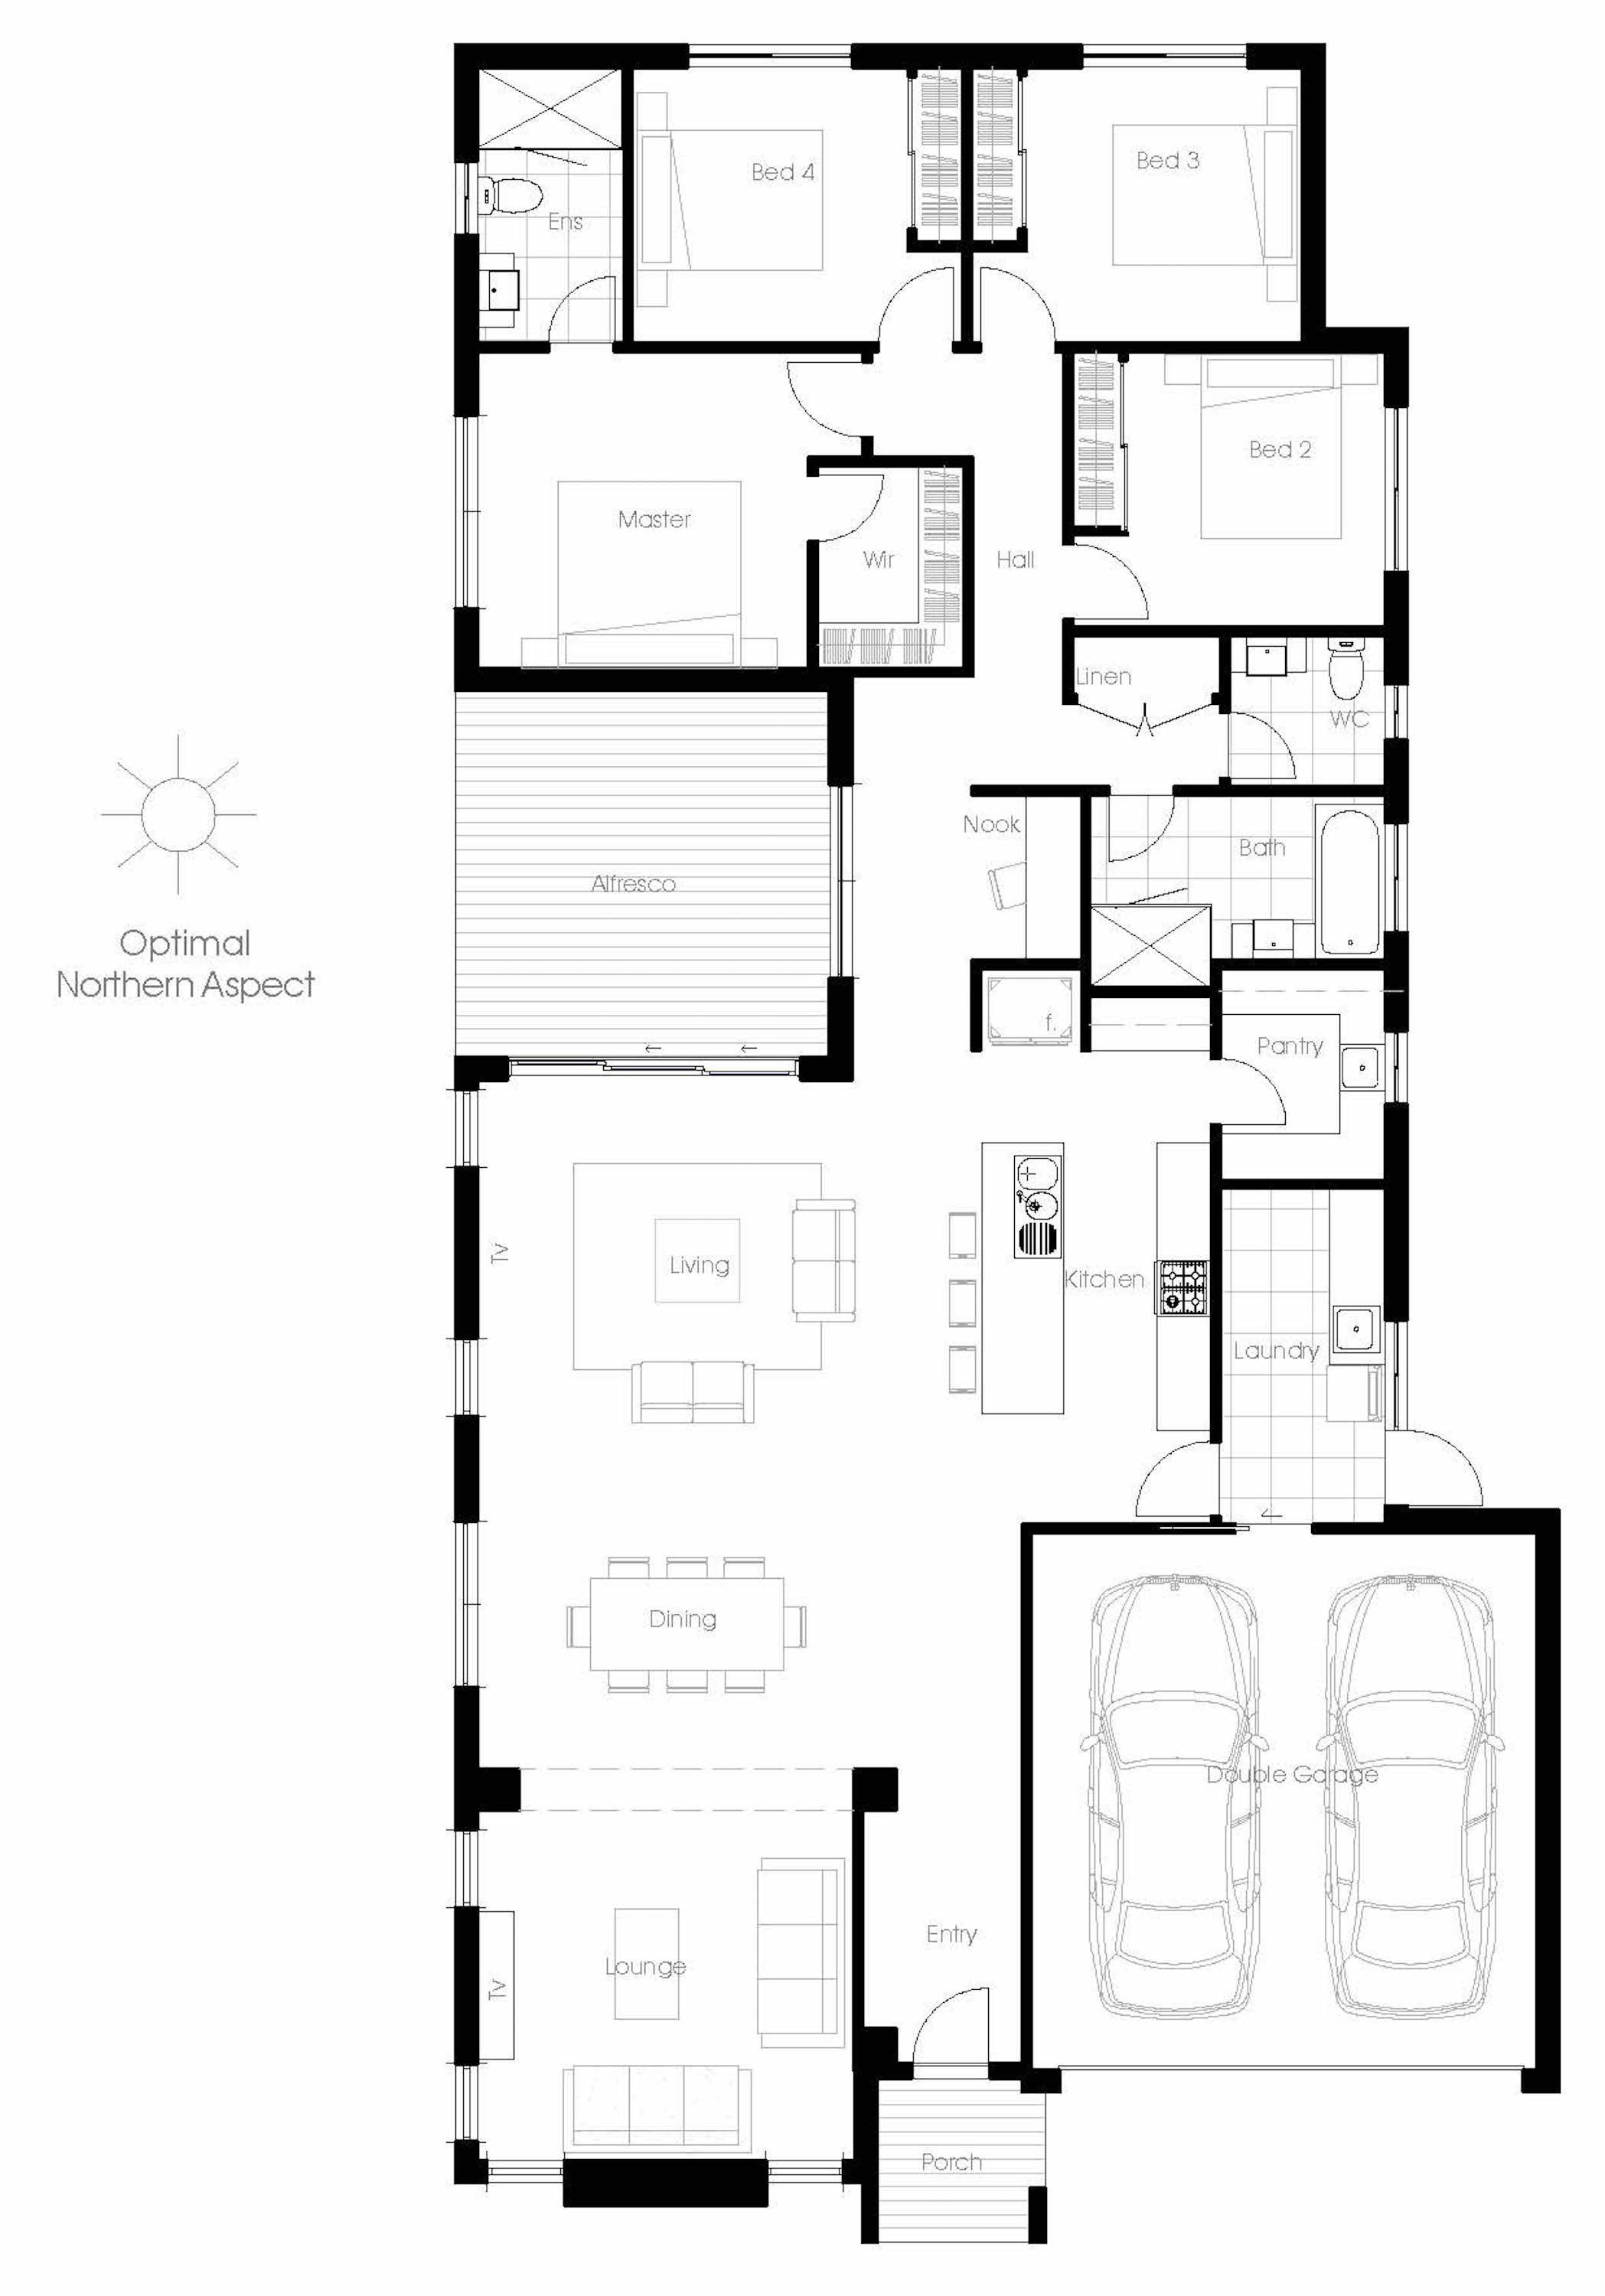 Green Energy Efficient House Plans Beautiful Waratah Energy Efficient Home Design Green Homes